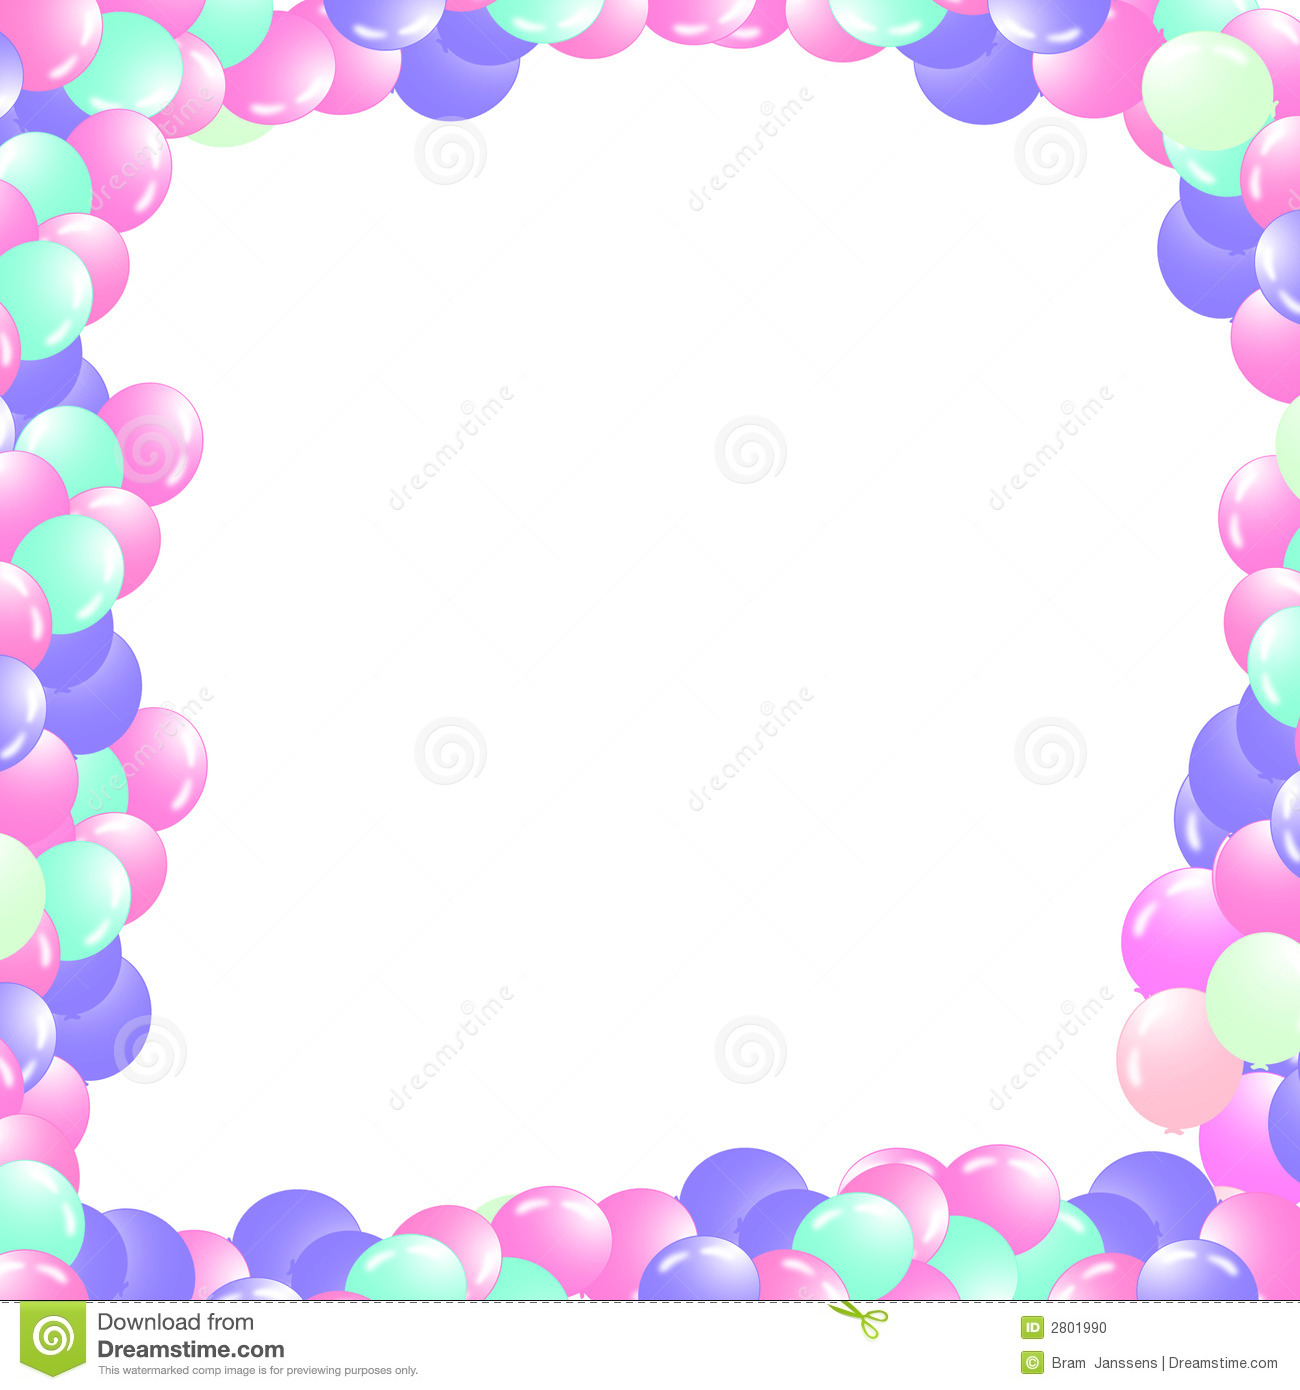 White Frame Png Balloons in a Frame With White